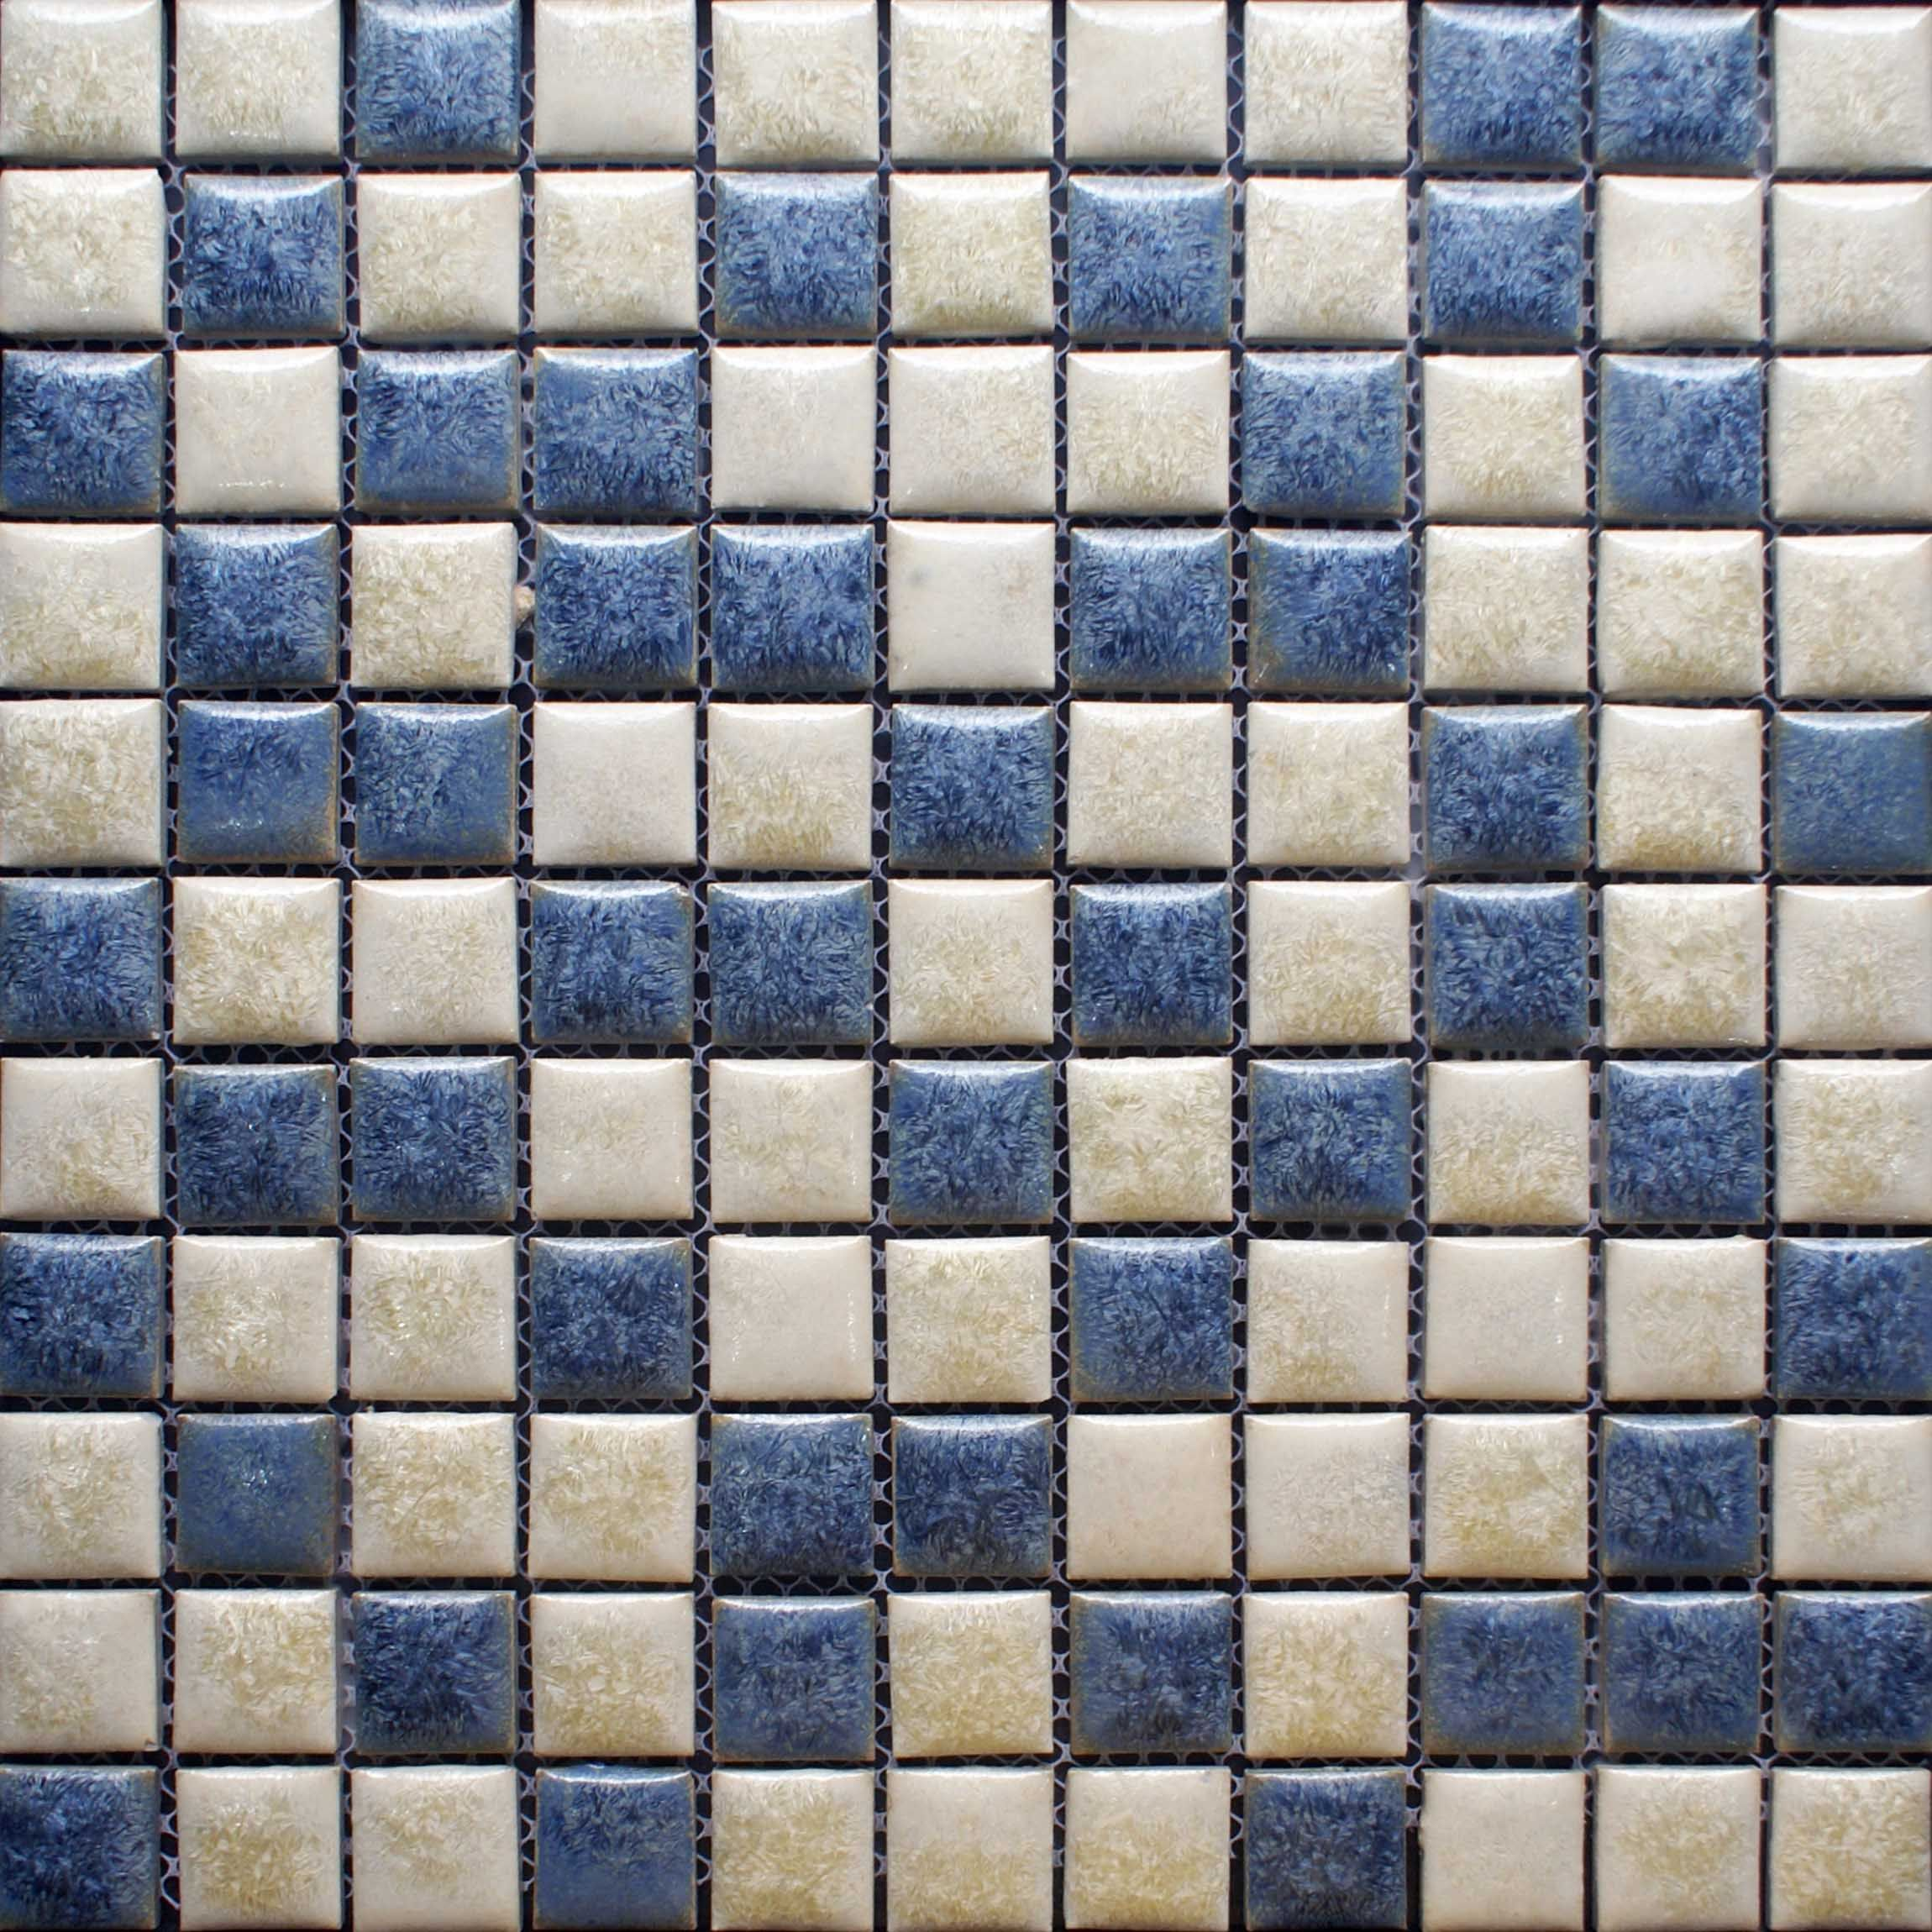 Blue and beige porcelain tile backsplash kitchen wall art bathroom blue and beige porcelain tile backsplash kitchen wall art bathroom floor mosaic tiles glazed ceramic pebble dailygadgetfo Images